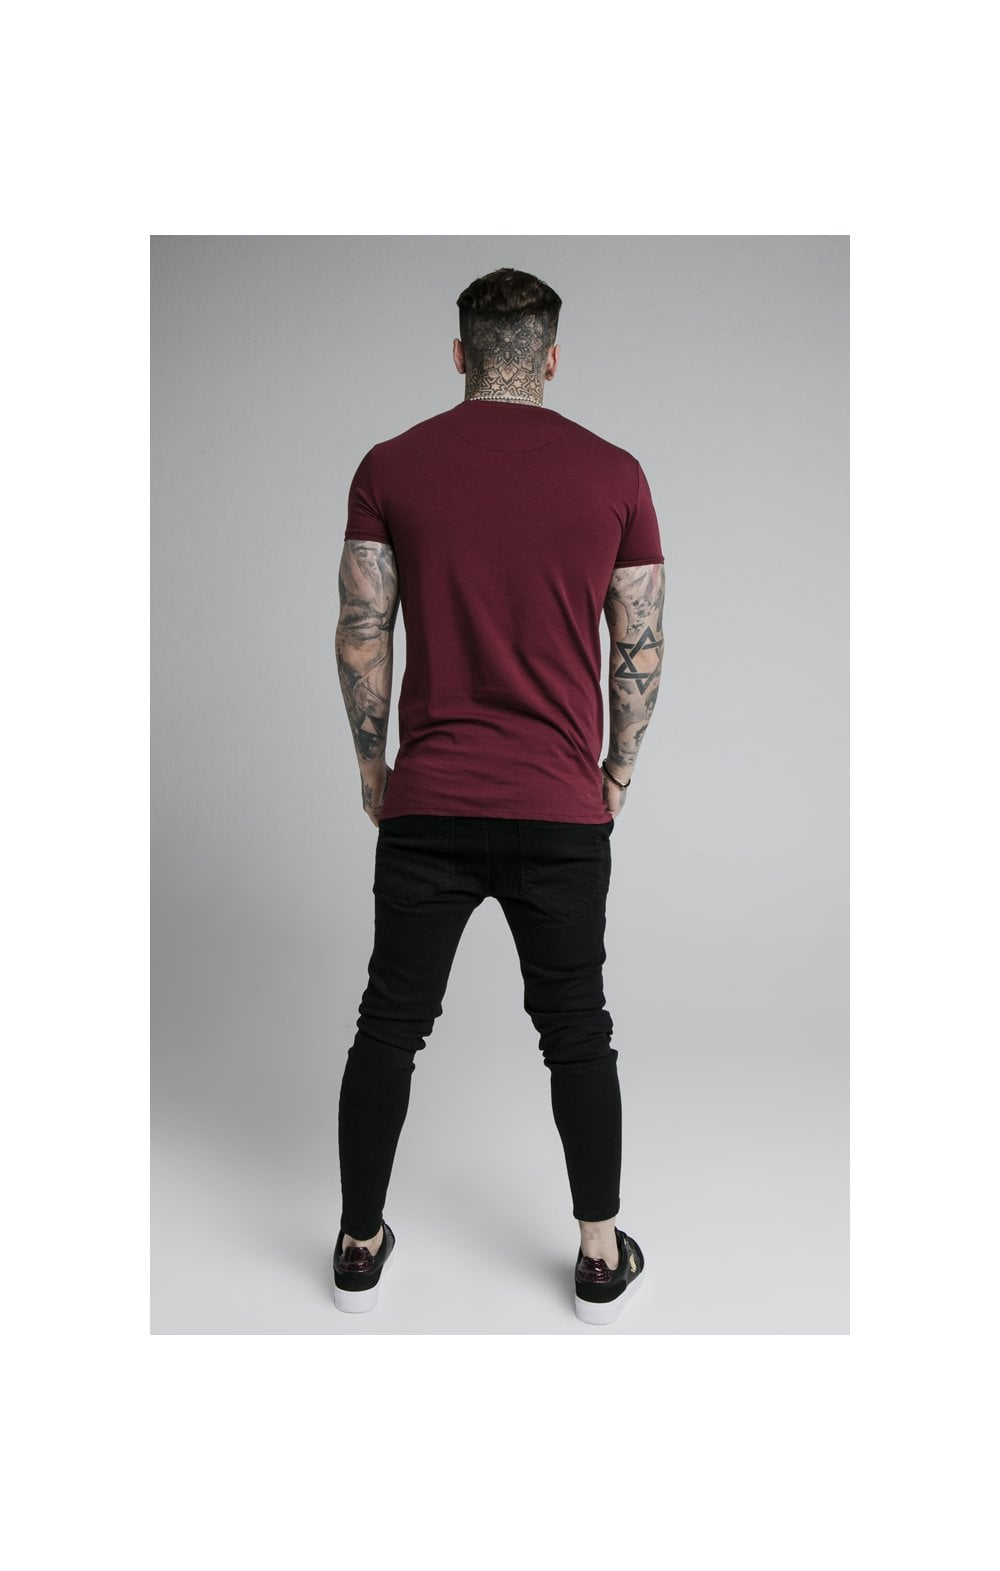 SikSilk Straight Hem Gym Tee - Burgundy (4)